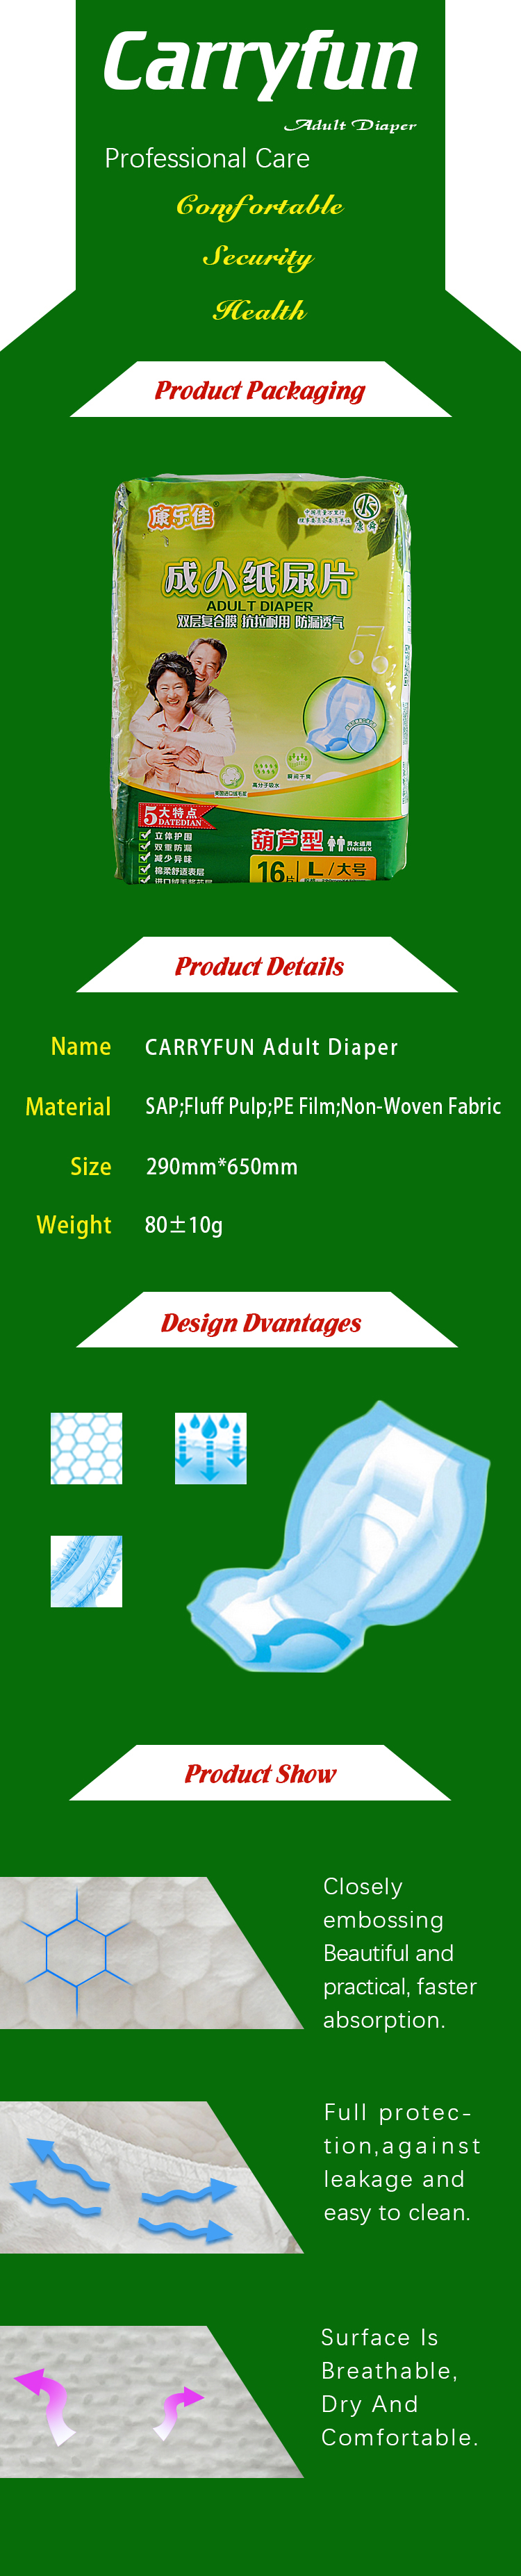 CARRY FUN Diaper Insert-L16